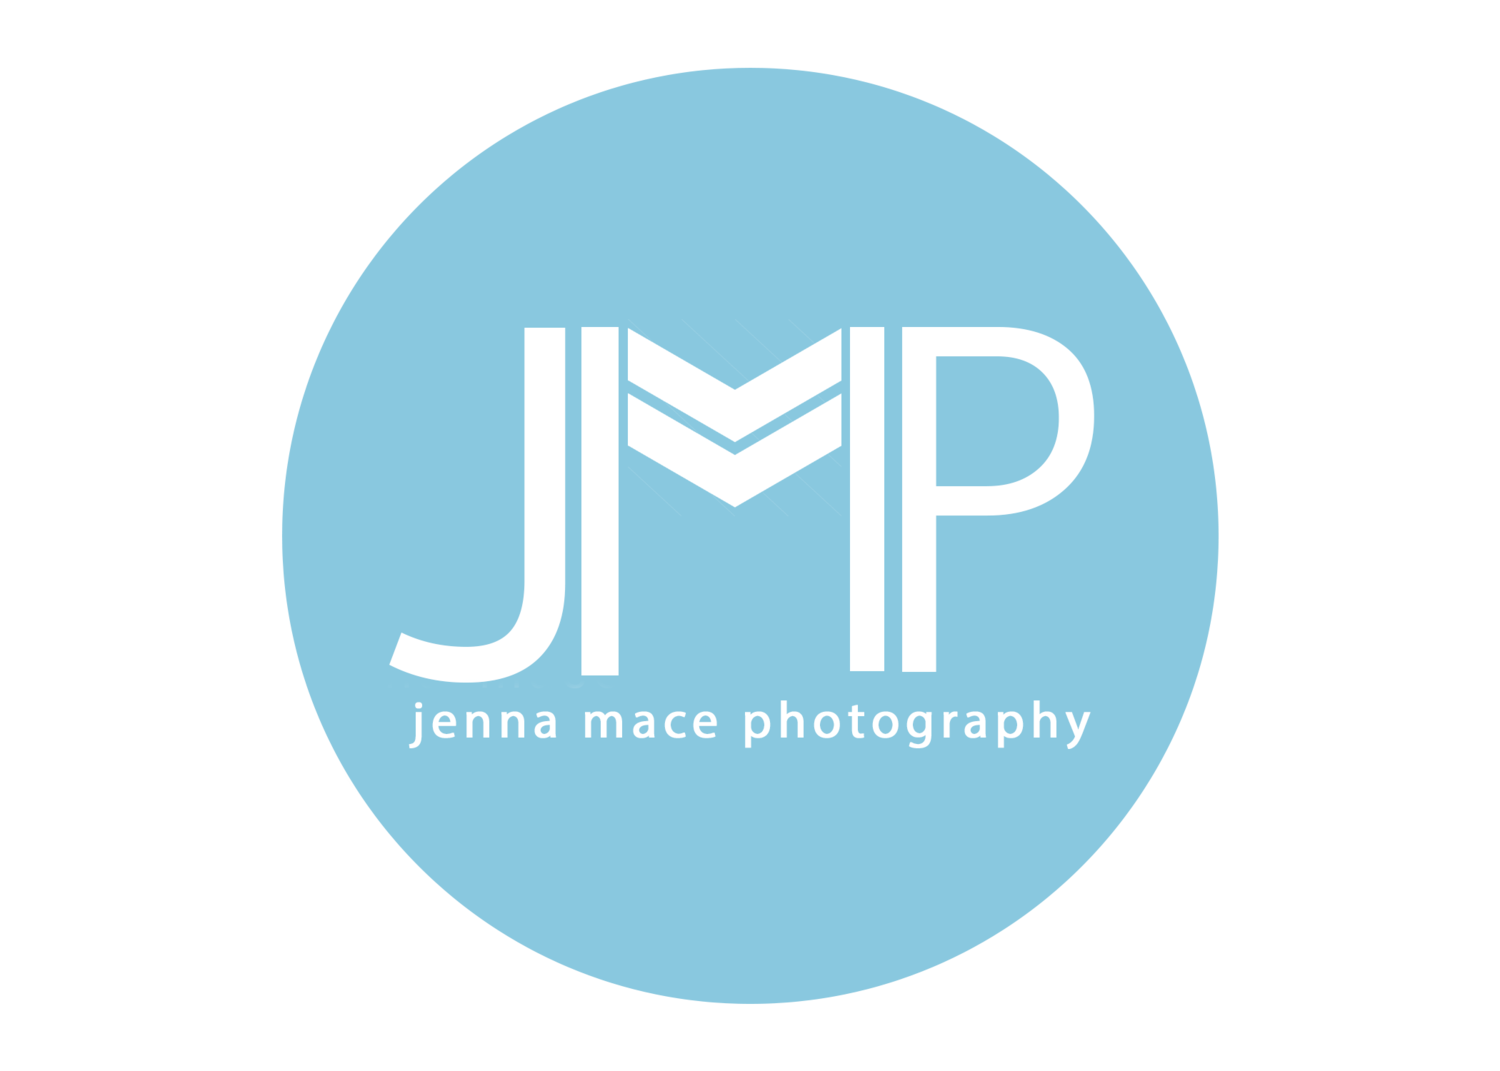 Jenna Mace Photography specializing in emotive lifestyle newborn and family sessions in the Baltimore area